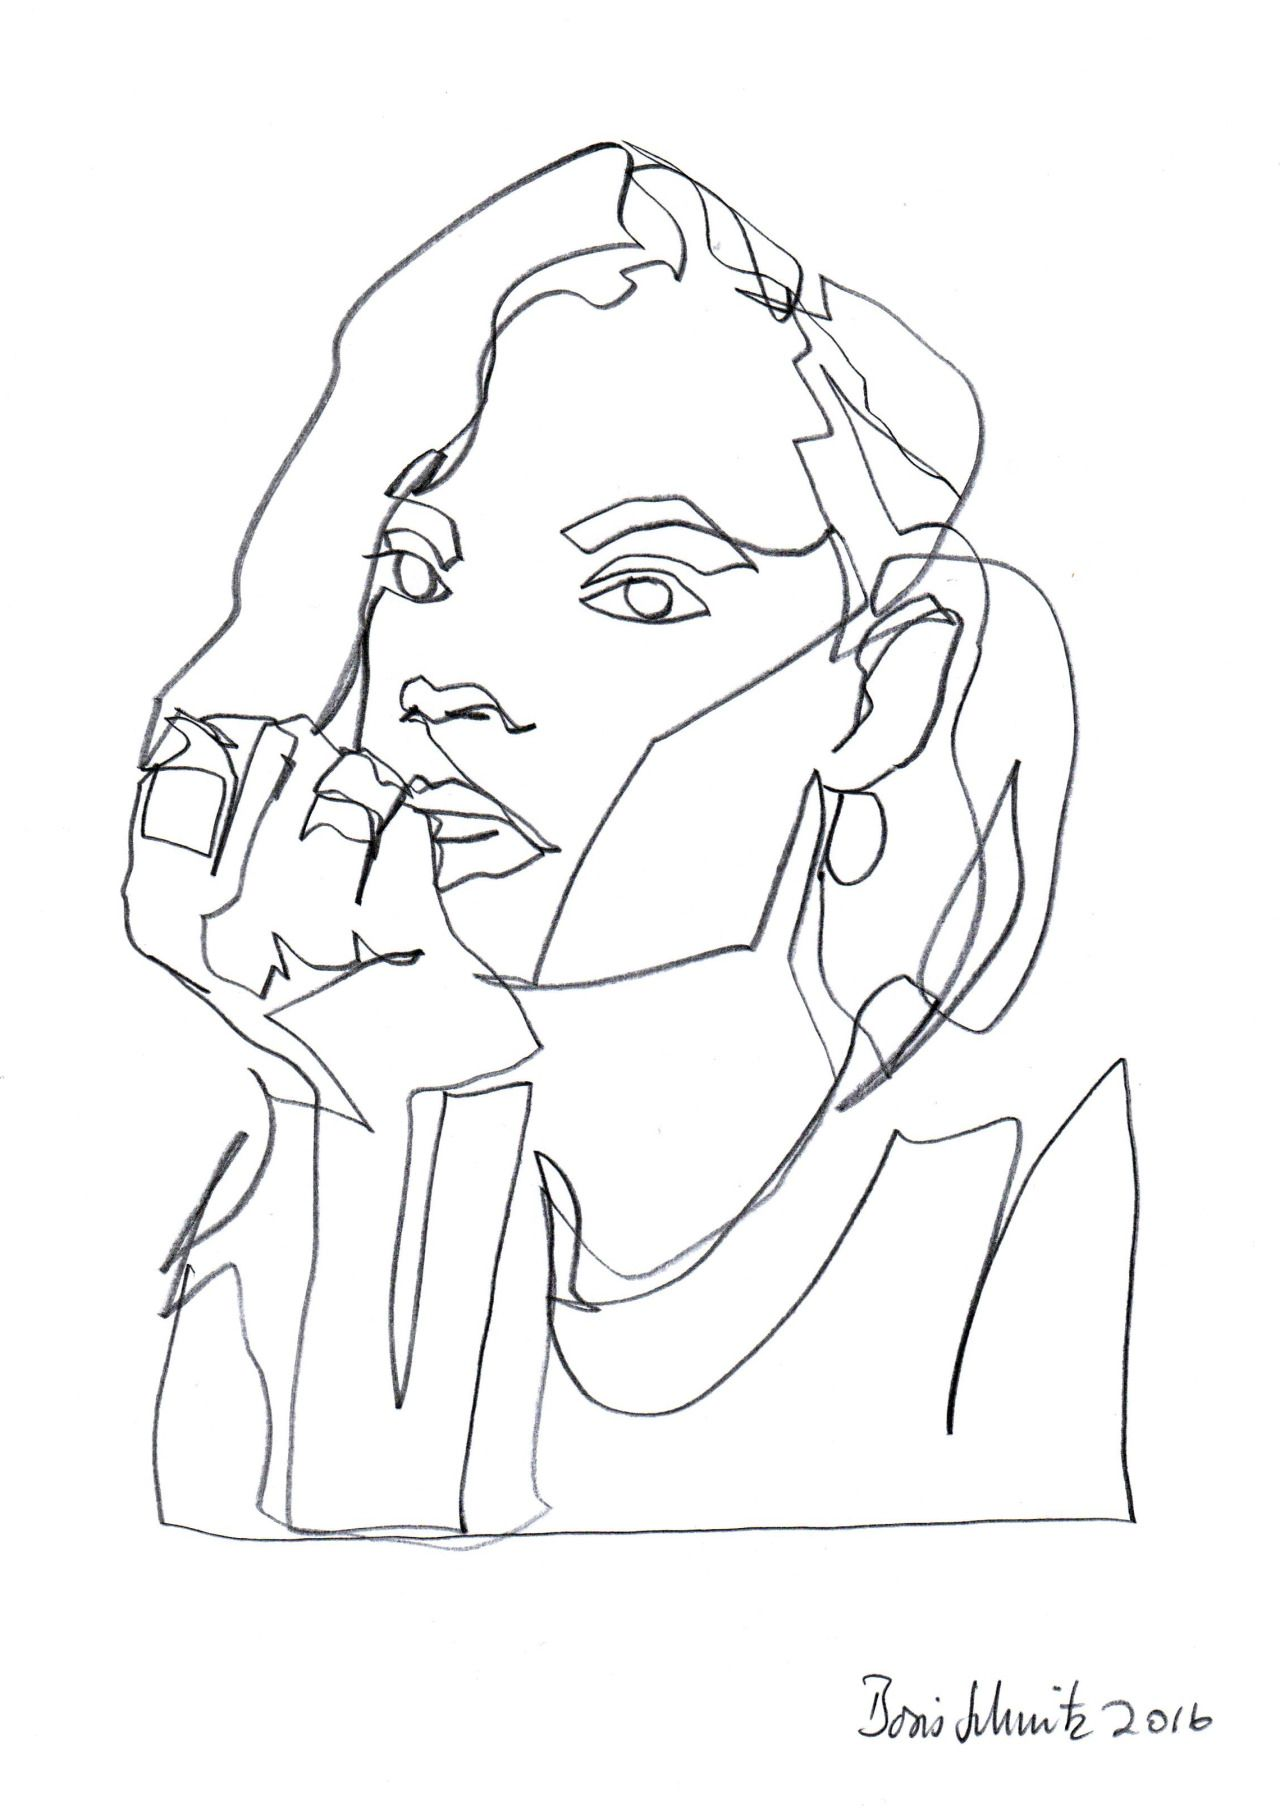 Simple Continuous Line Art : Continuous line drawing by boris schmitz week